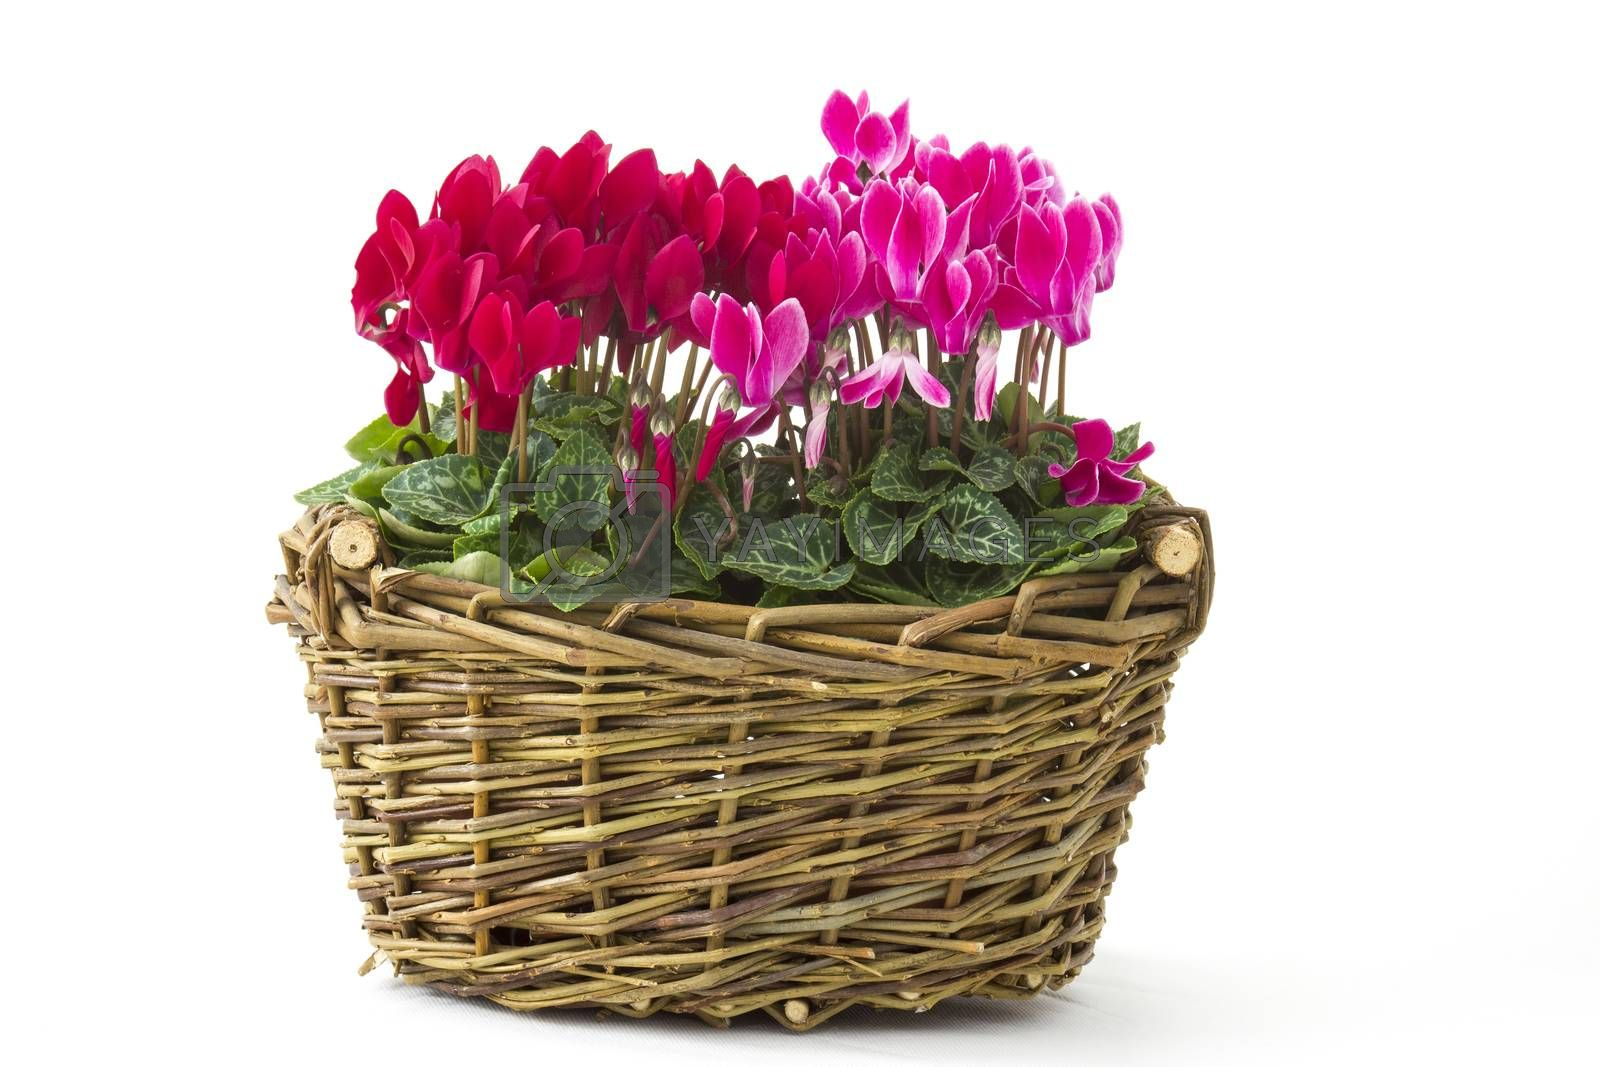 cyclamen persicum in a basket on white background